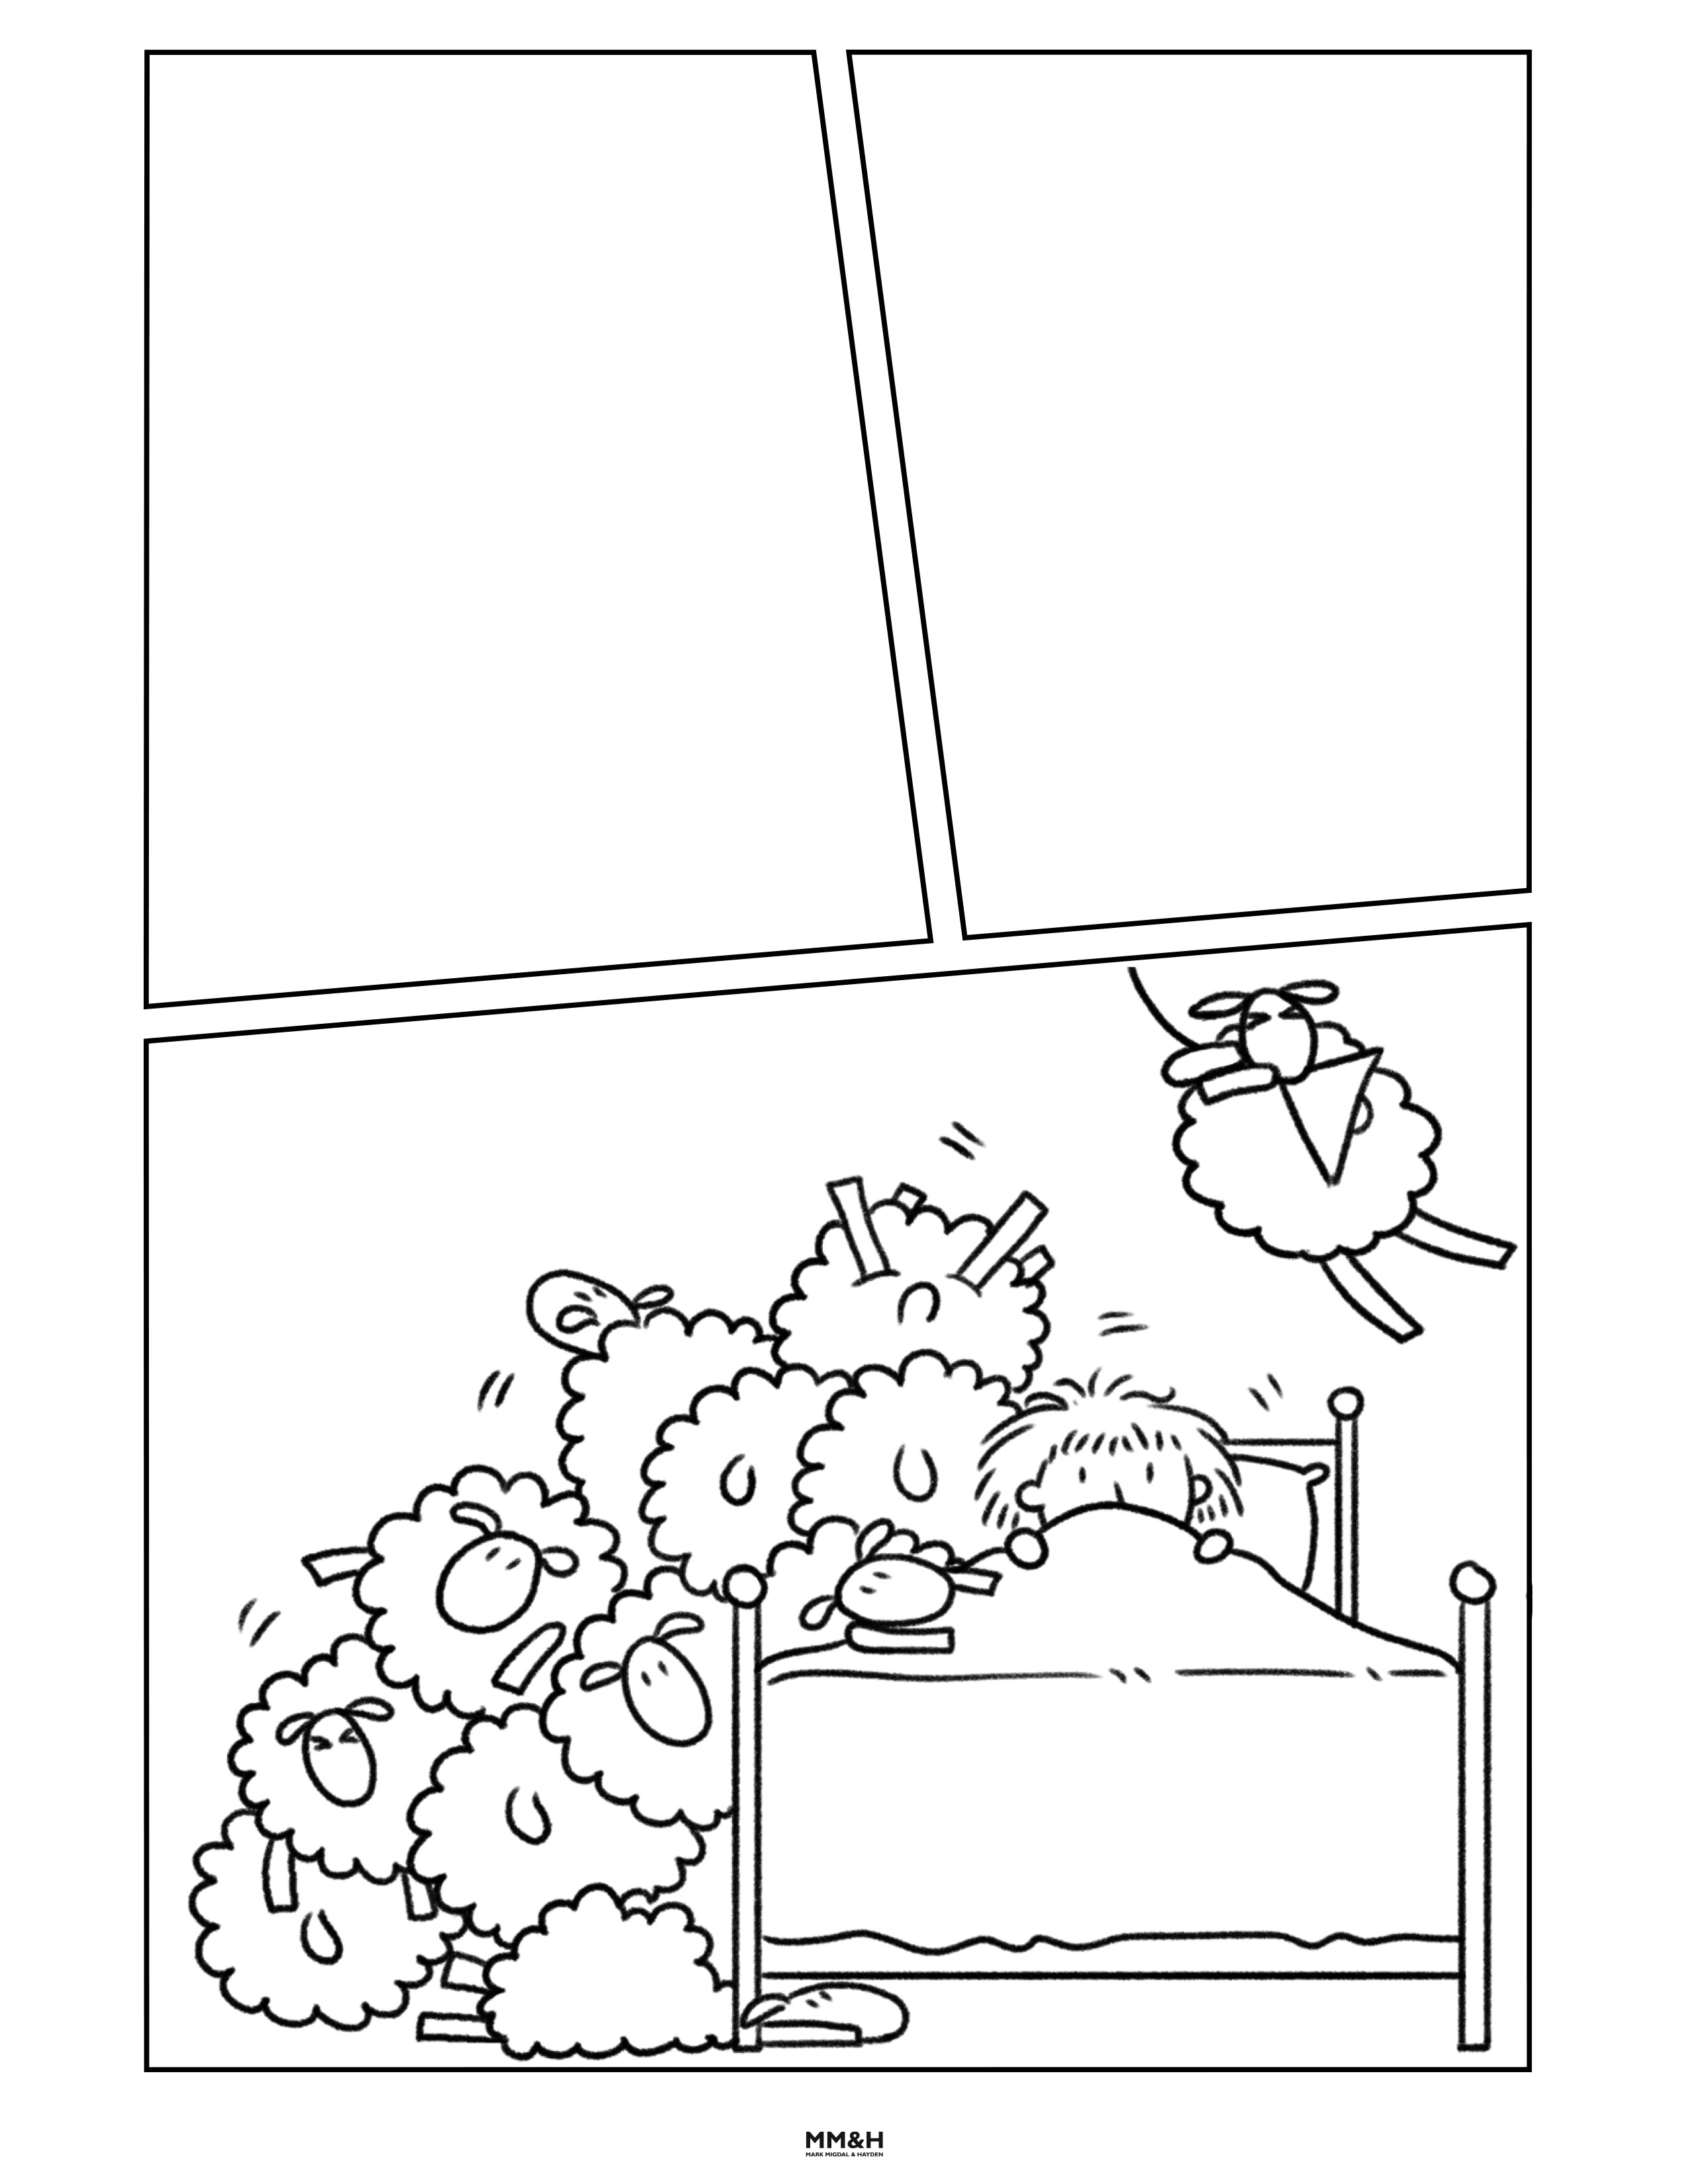 Comic-challenge-page-4 download